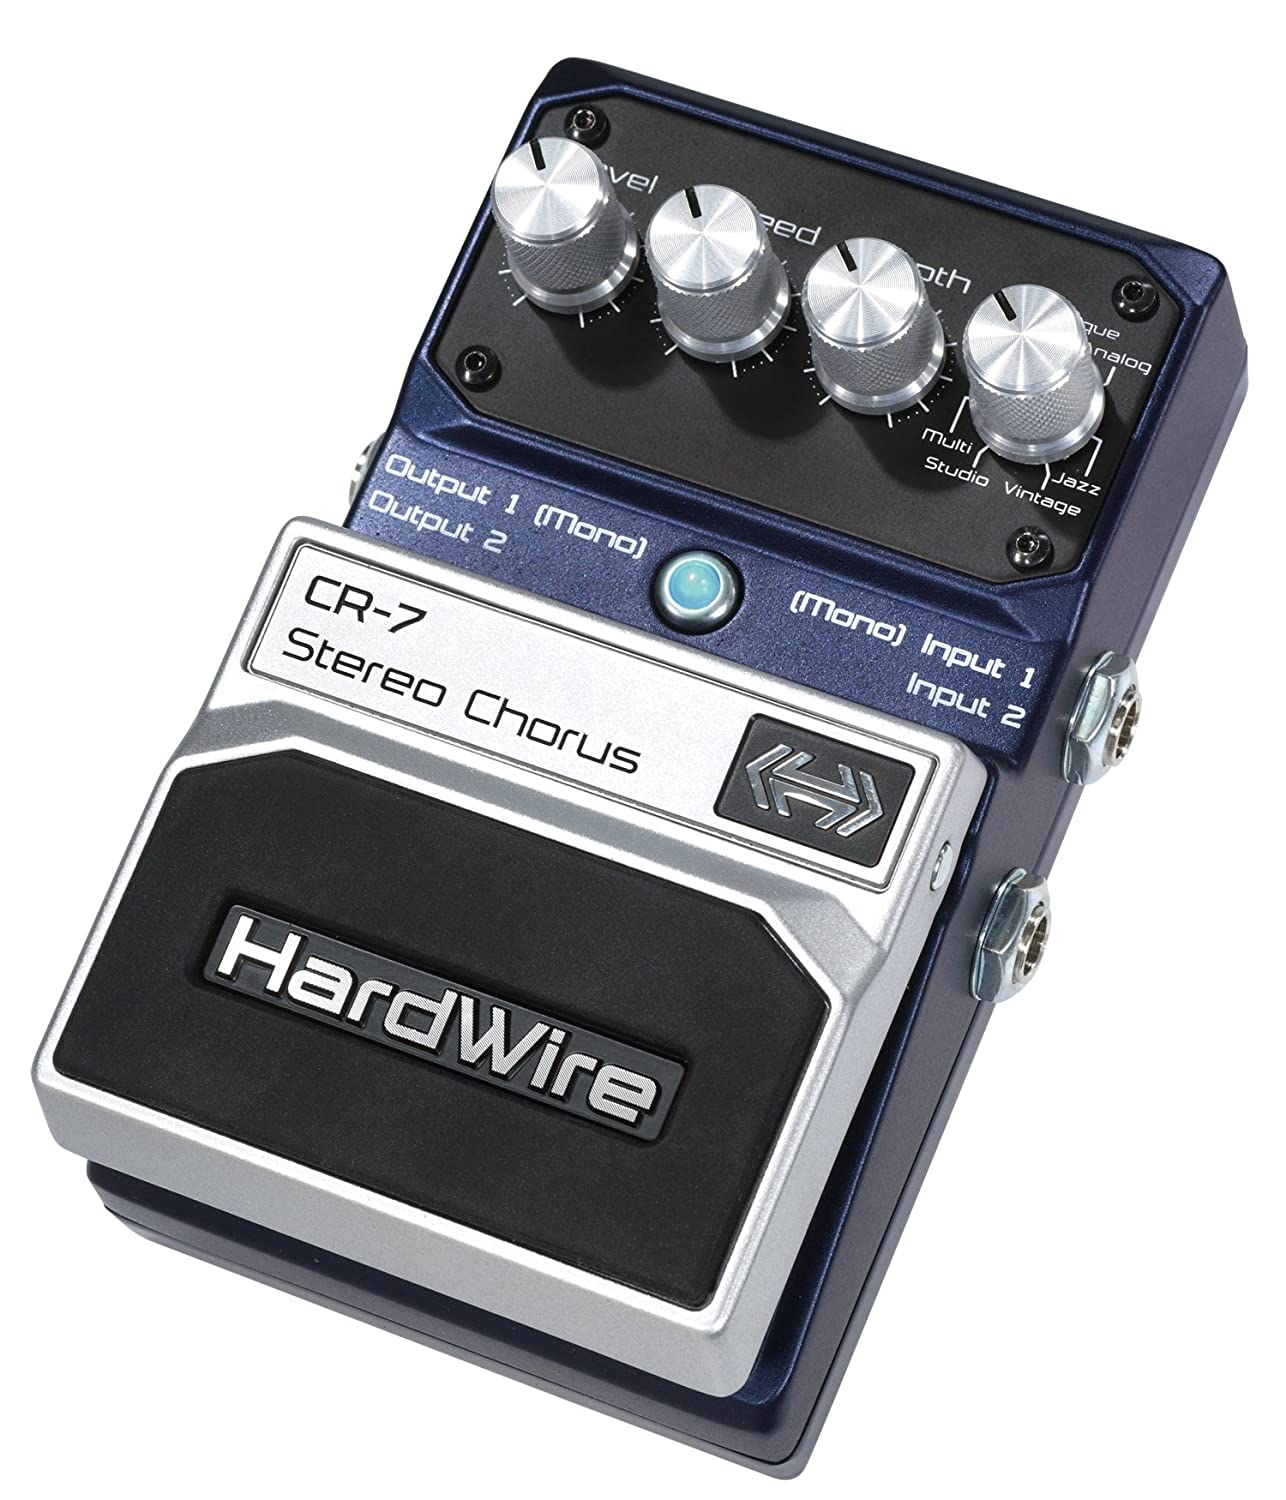 digitech cr 7 hardwire stereo chorus extreme